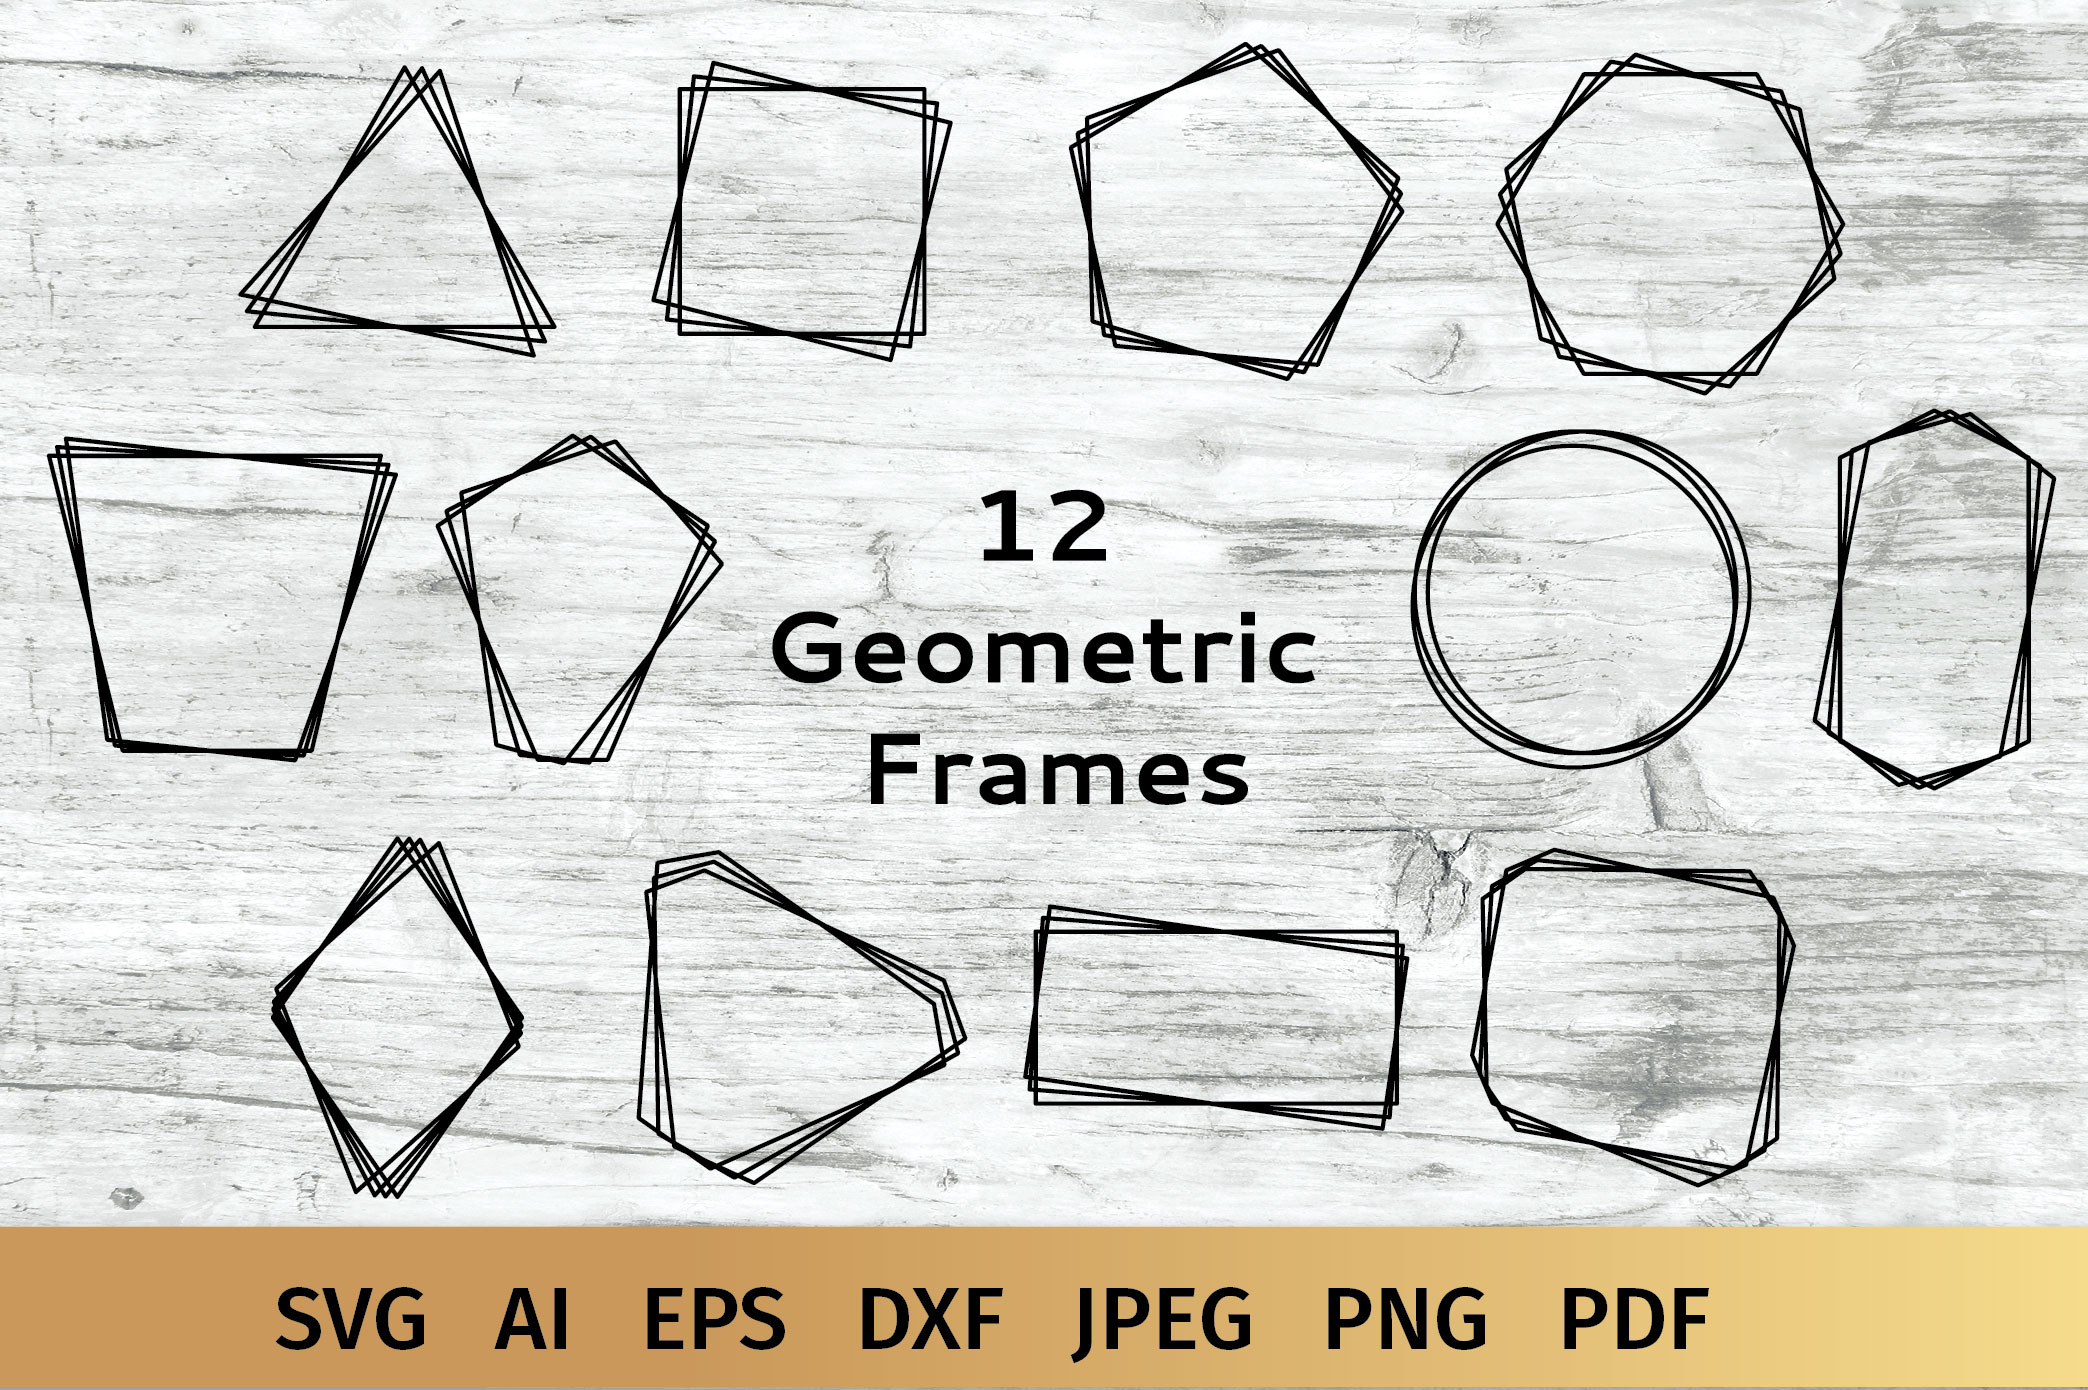 Geometric Frames SVG example image 1